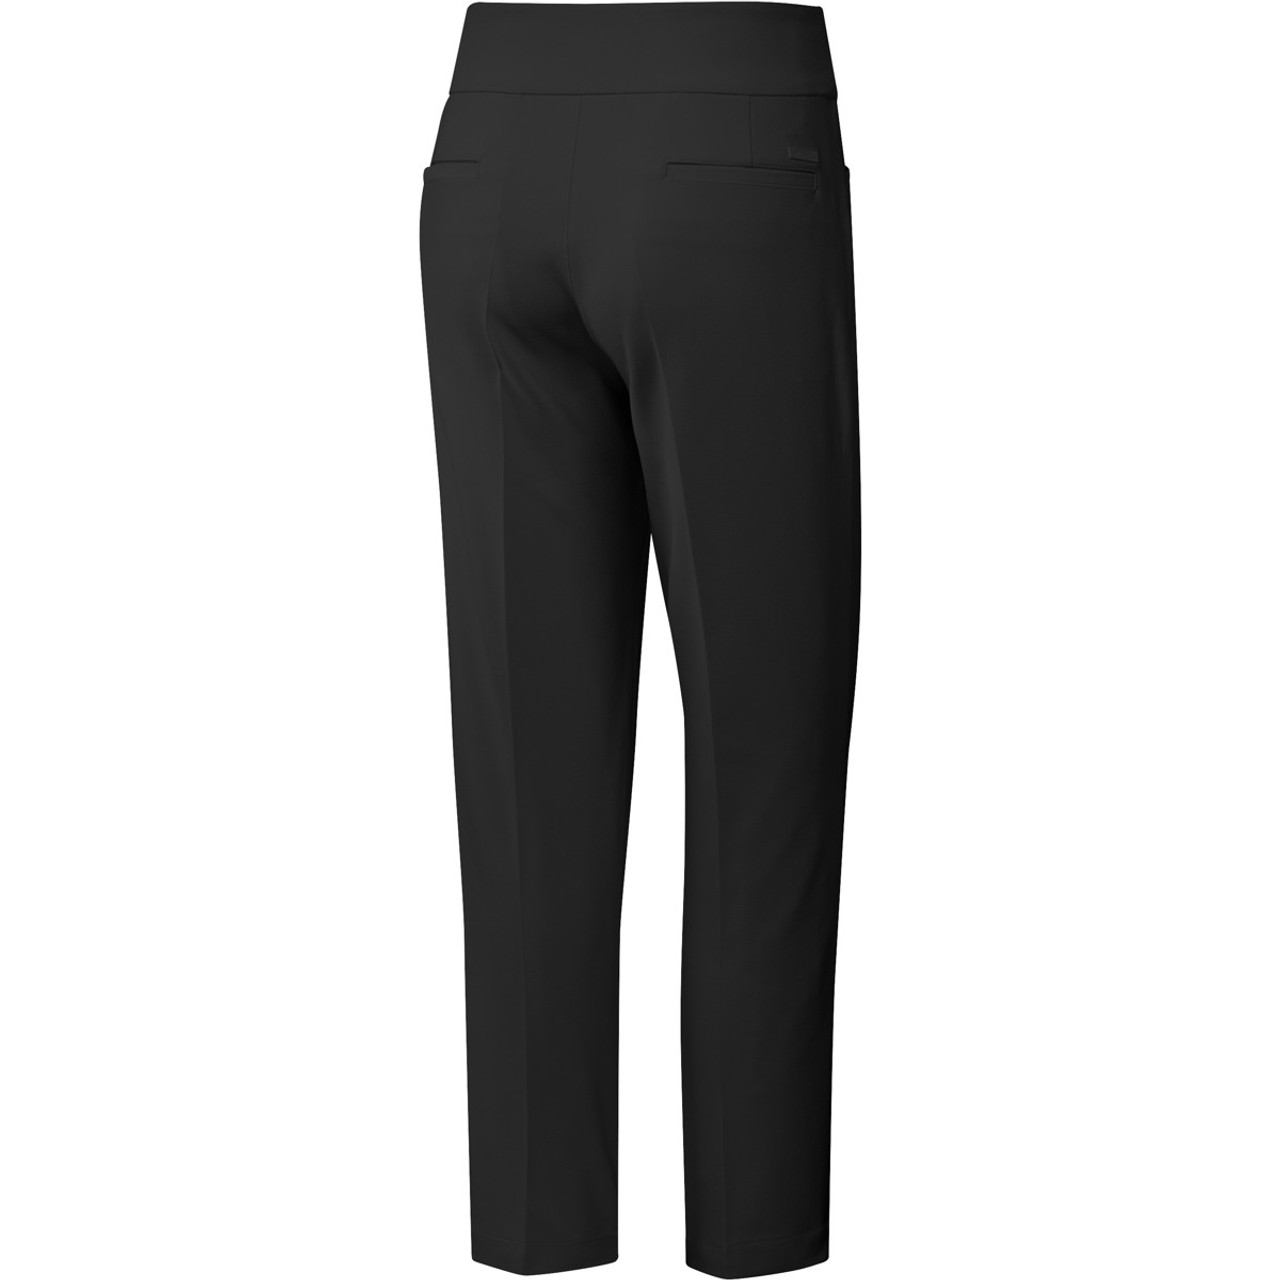 Adidas Womens Ultimate 365 Adistar Cropped Pants